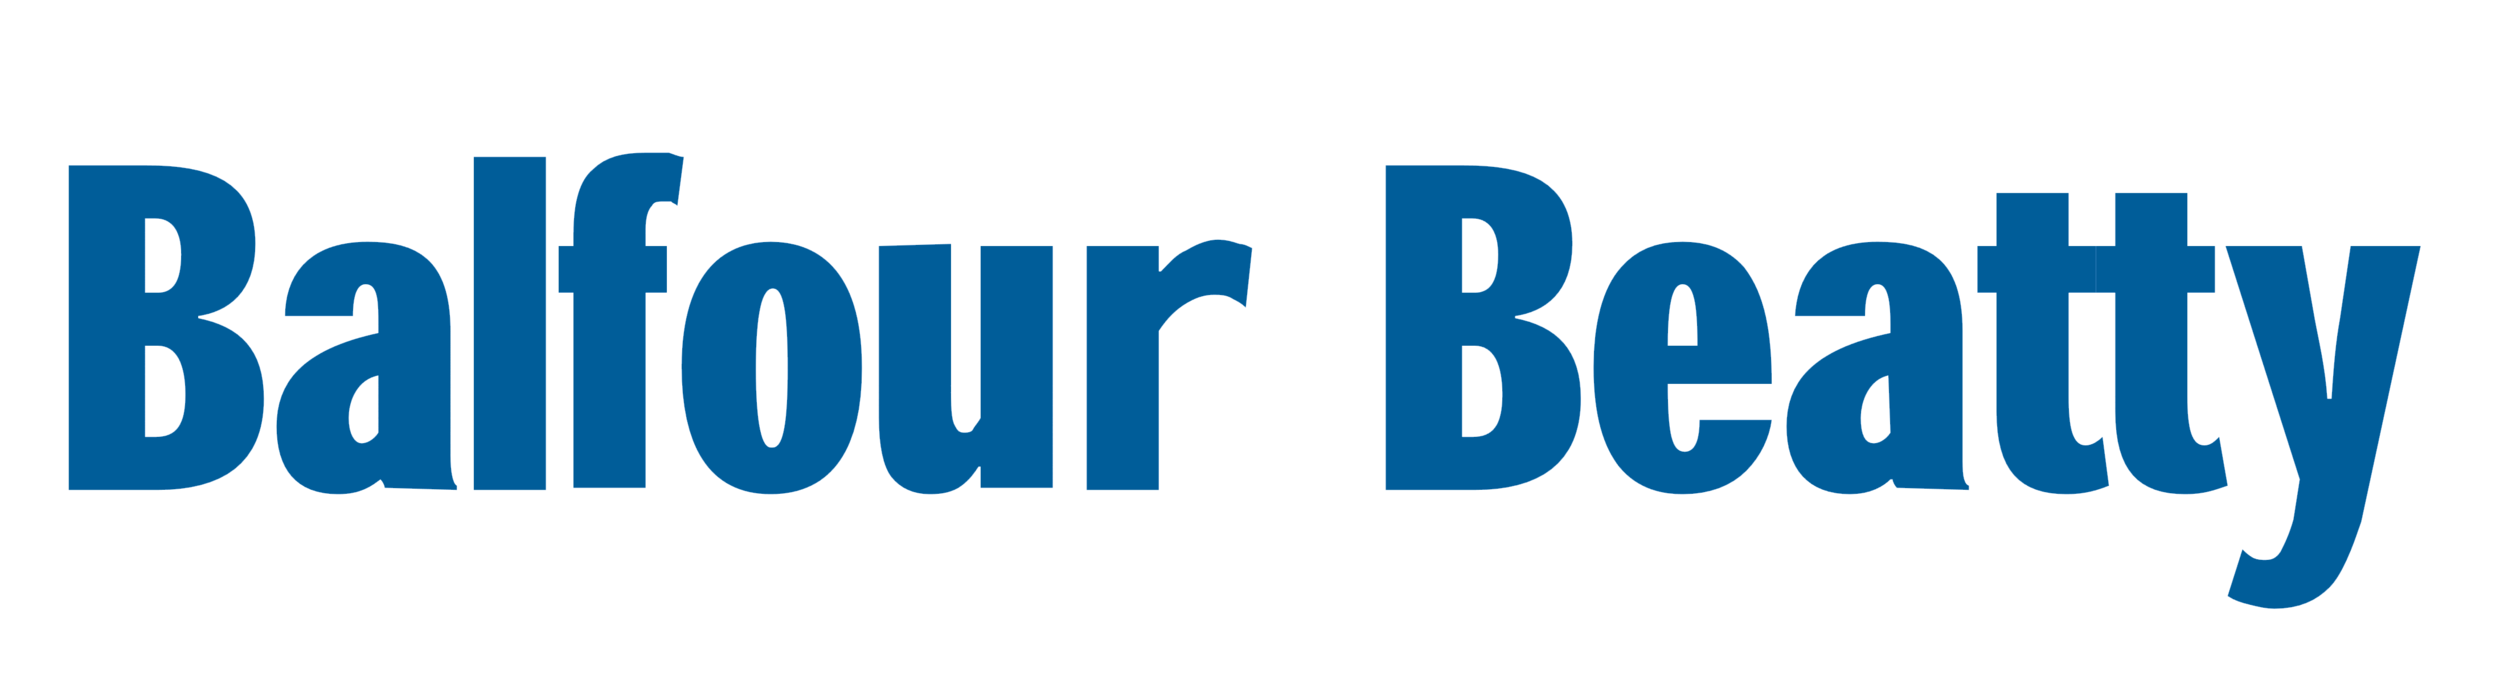 Balfour_Beatty_logo.png